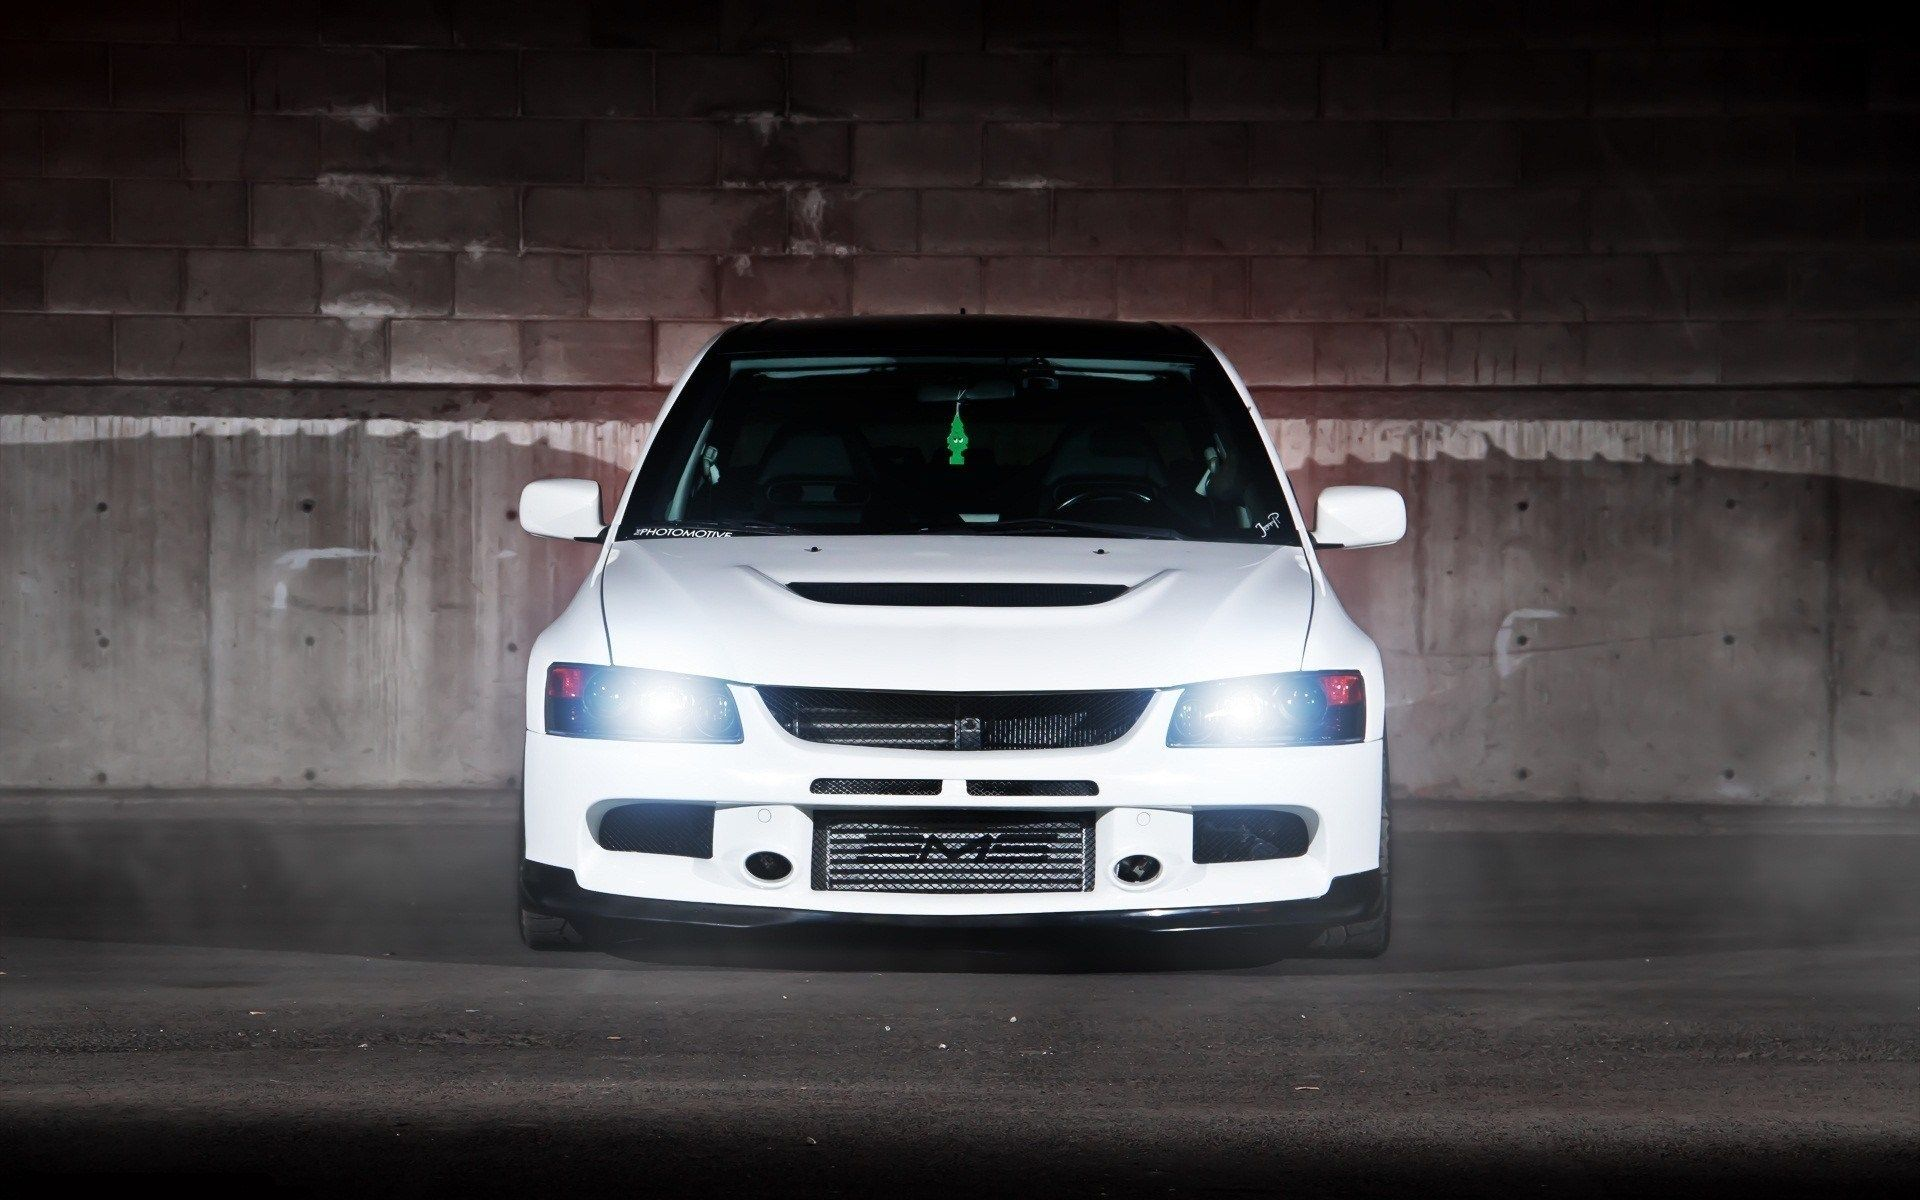 Mitsubishi Evo 9 Wallpapers Wallpaper Cave With Images Evo 9